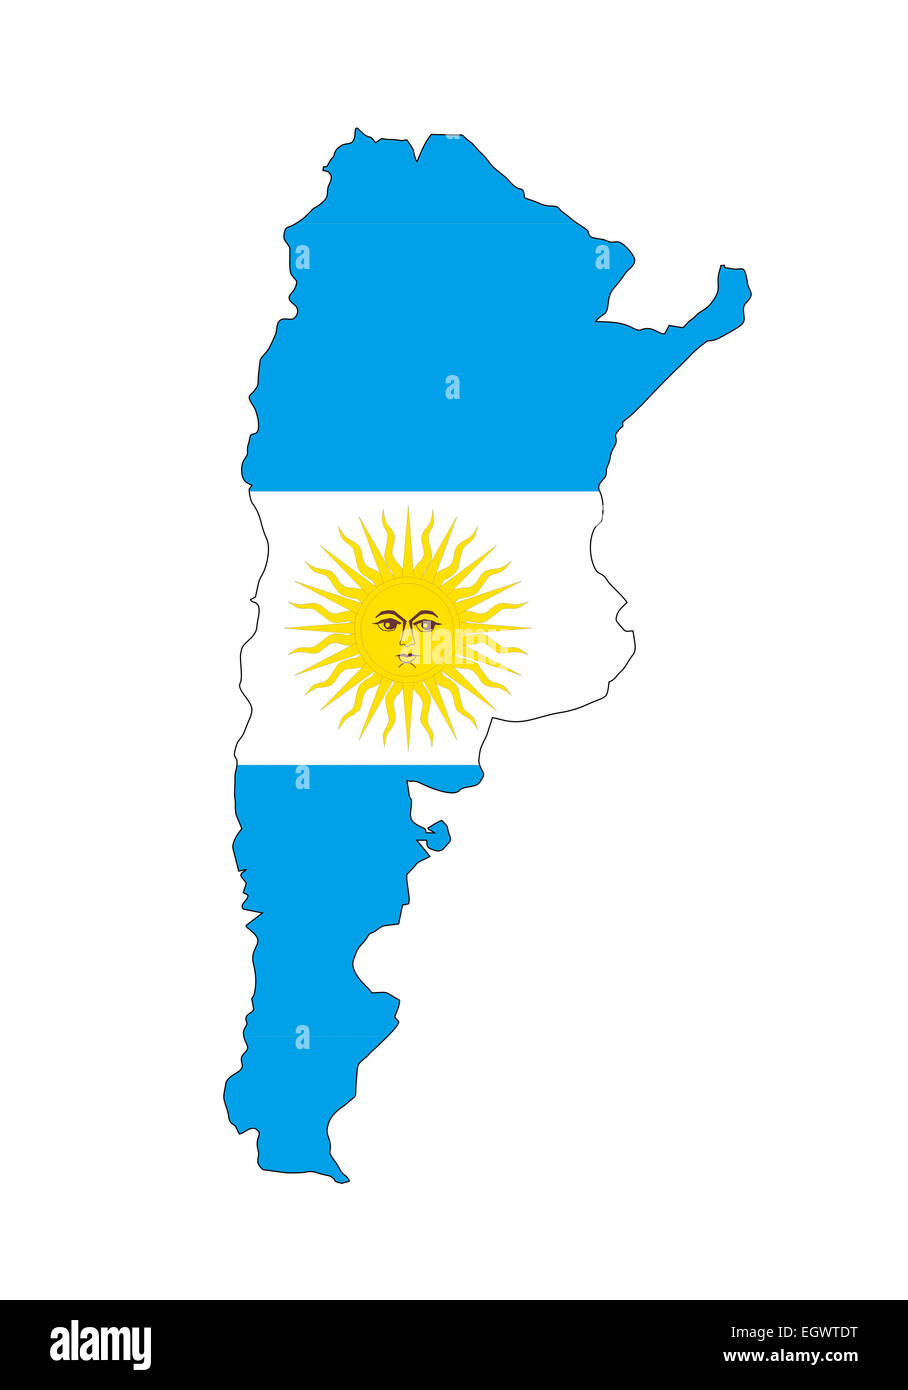 argentina country flag map shape national symbol Stock Photo ...